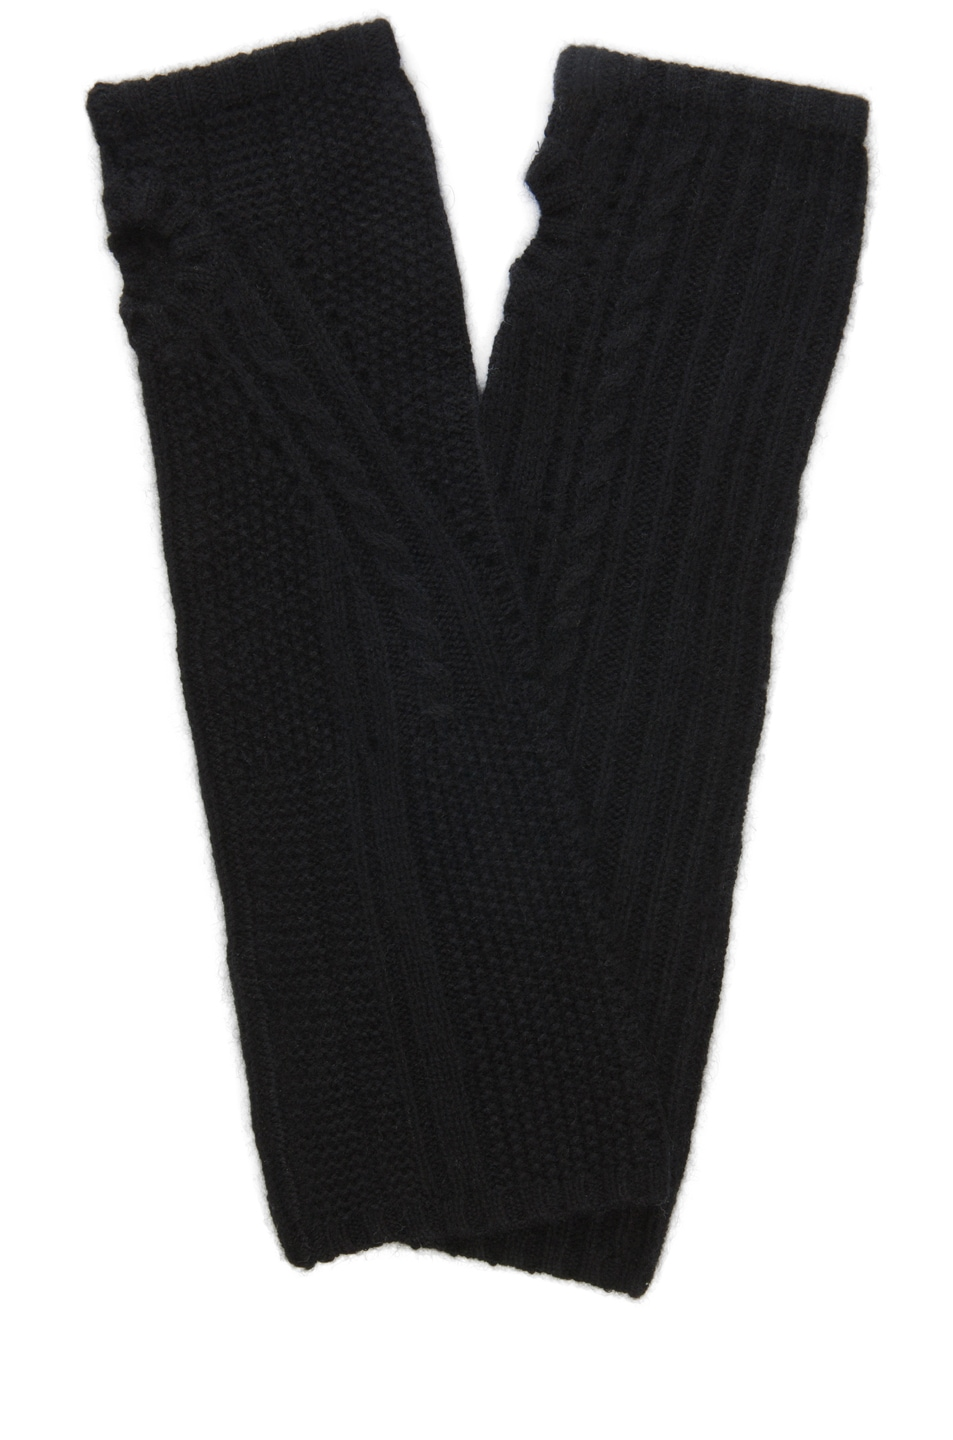 Image 1 of Inhabit Cable Arm Warmers in Black